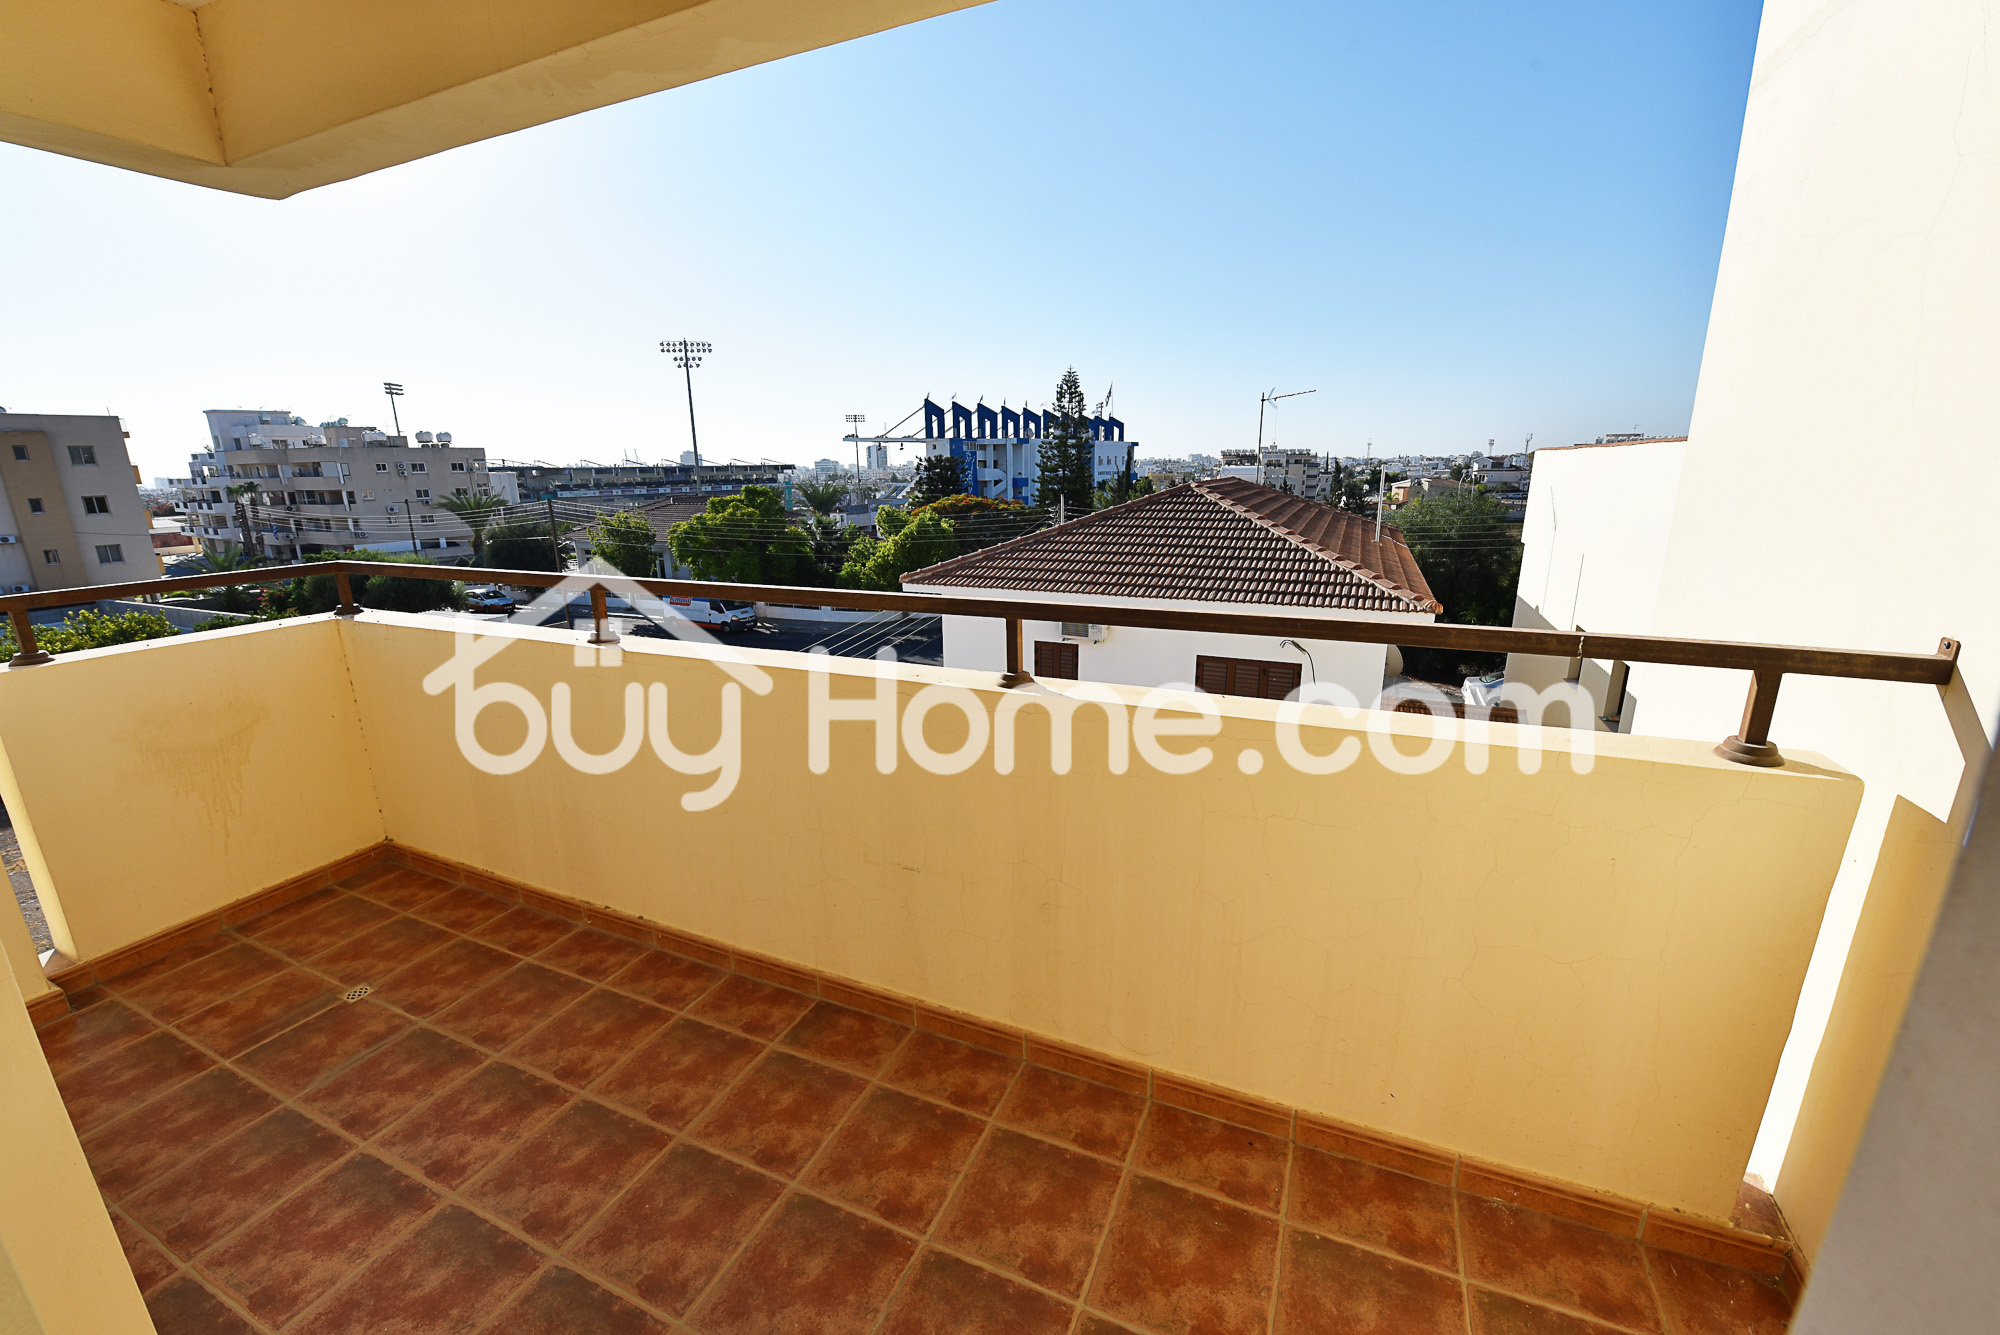 2 Bedroom Apartment   BuyHome